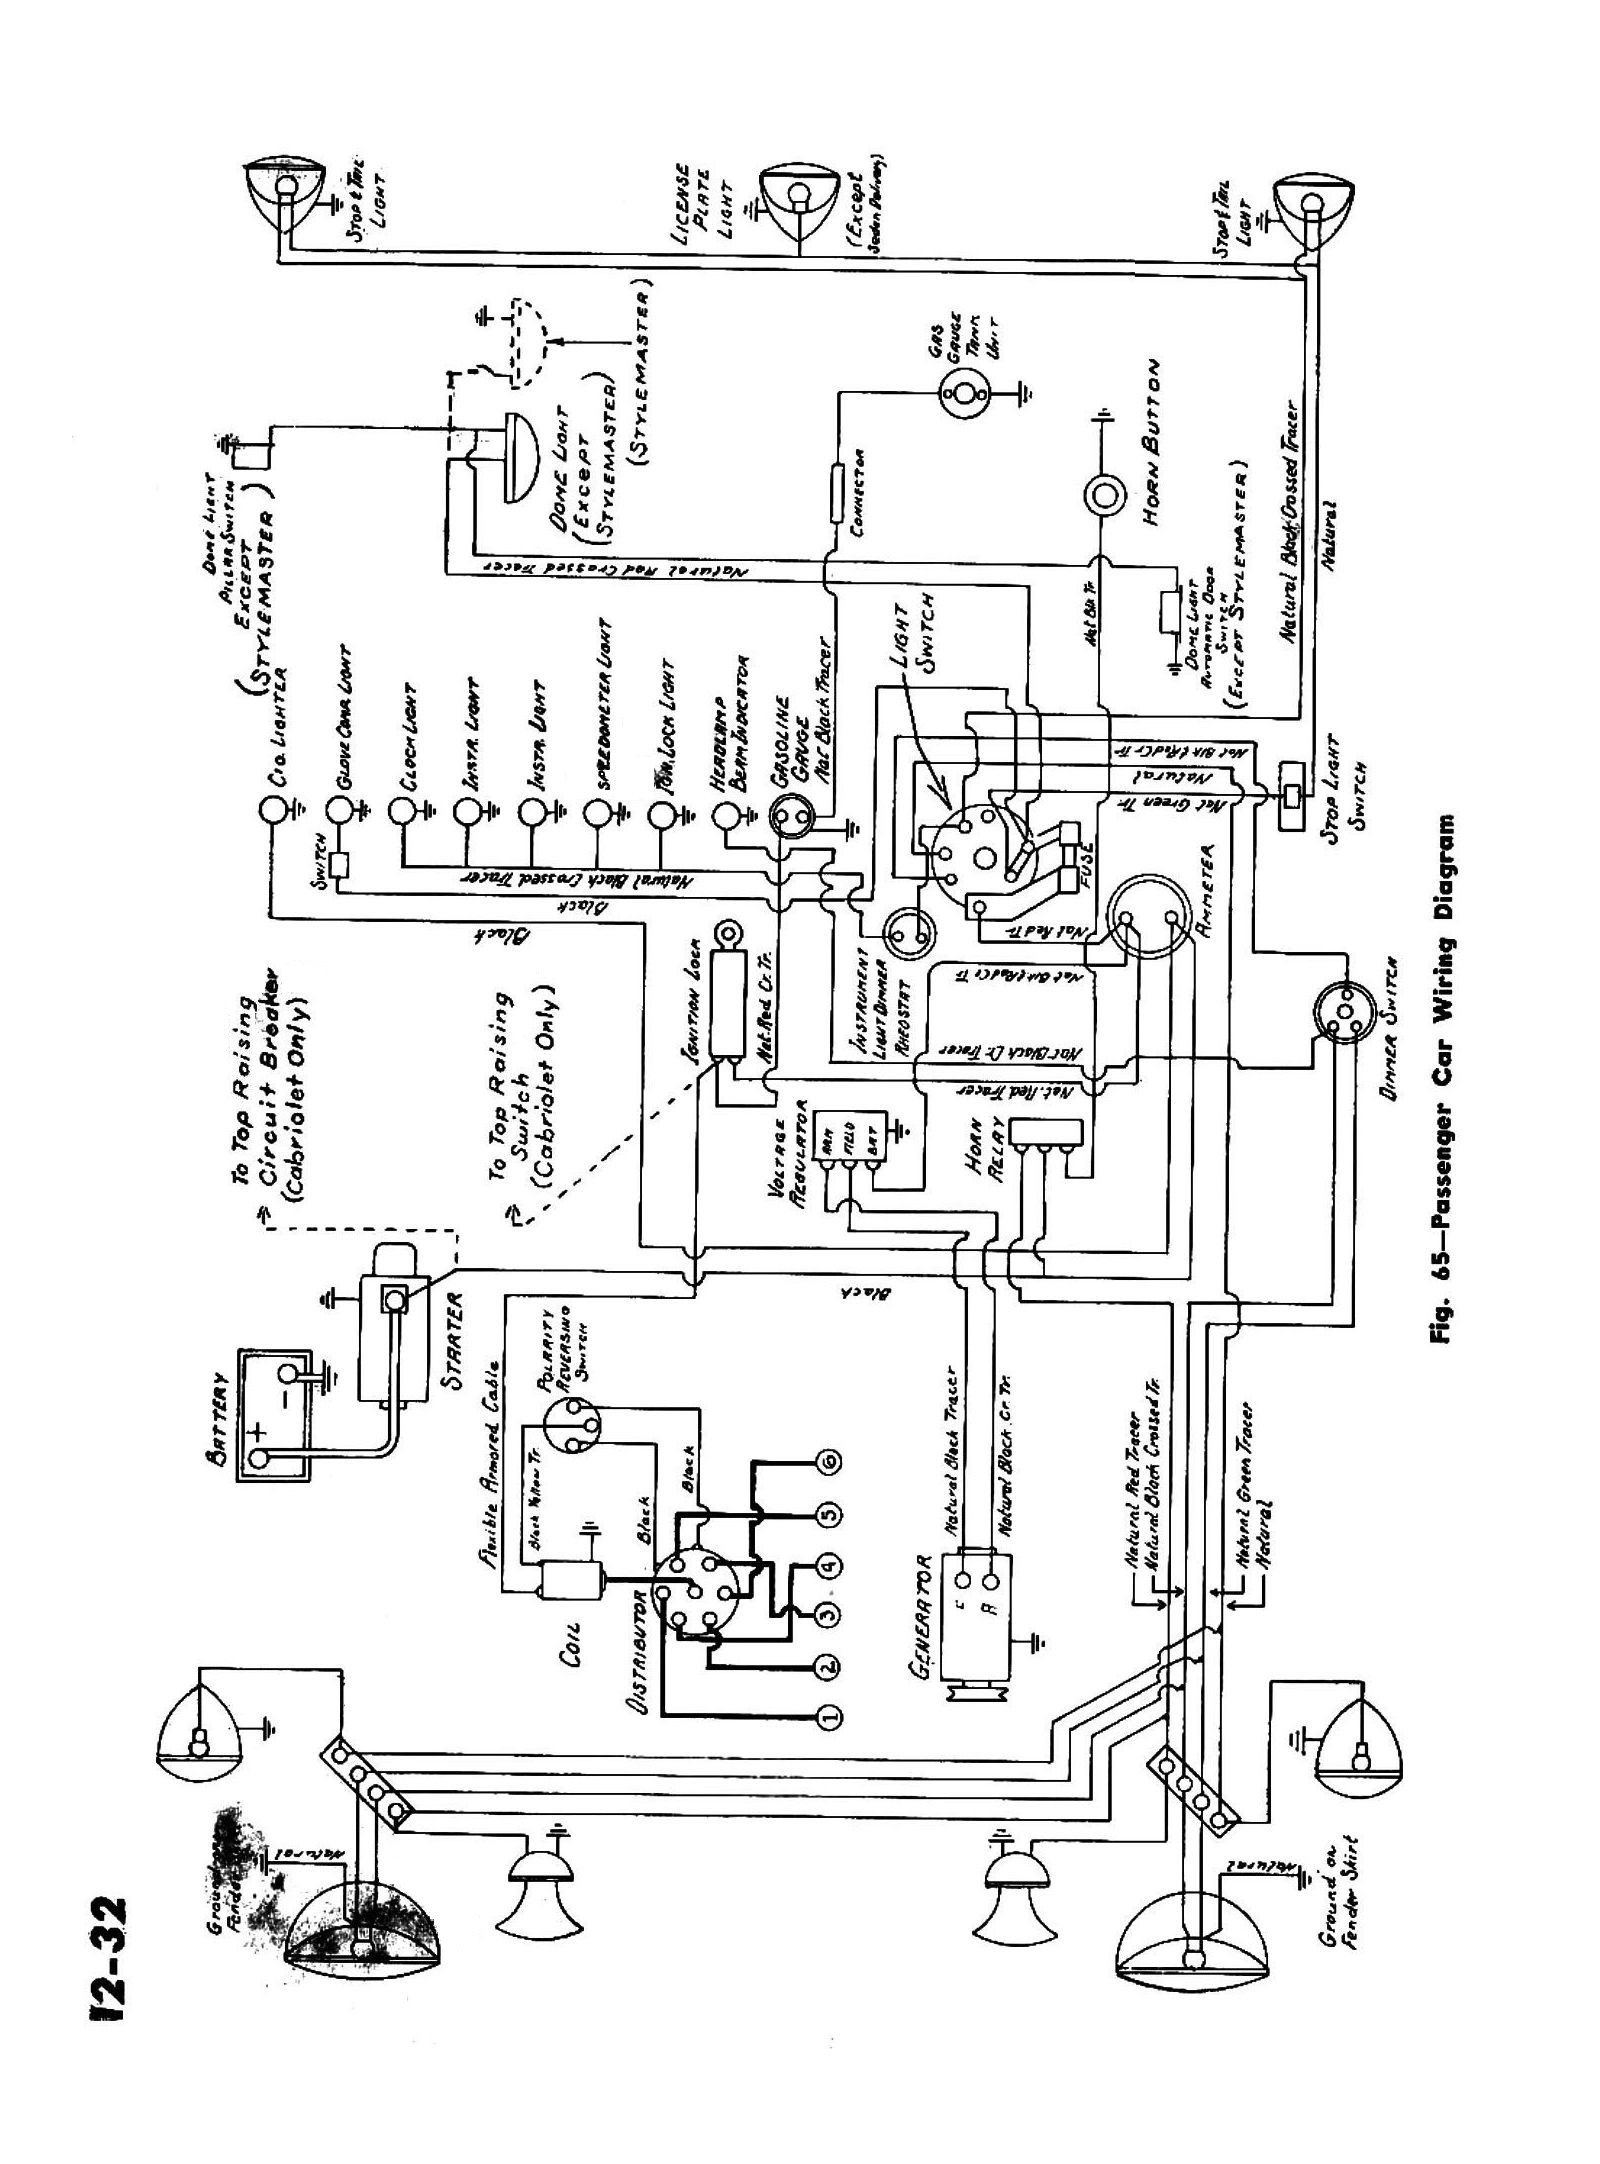 chevy wiring diagrams rh chevy oldcarmanualproject com free car wiring diagrams pdf free classic car wiring diagrams